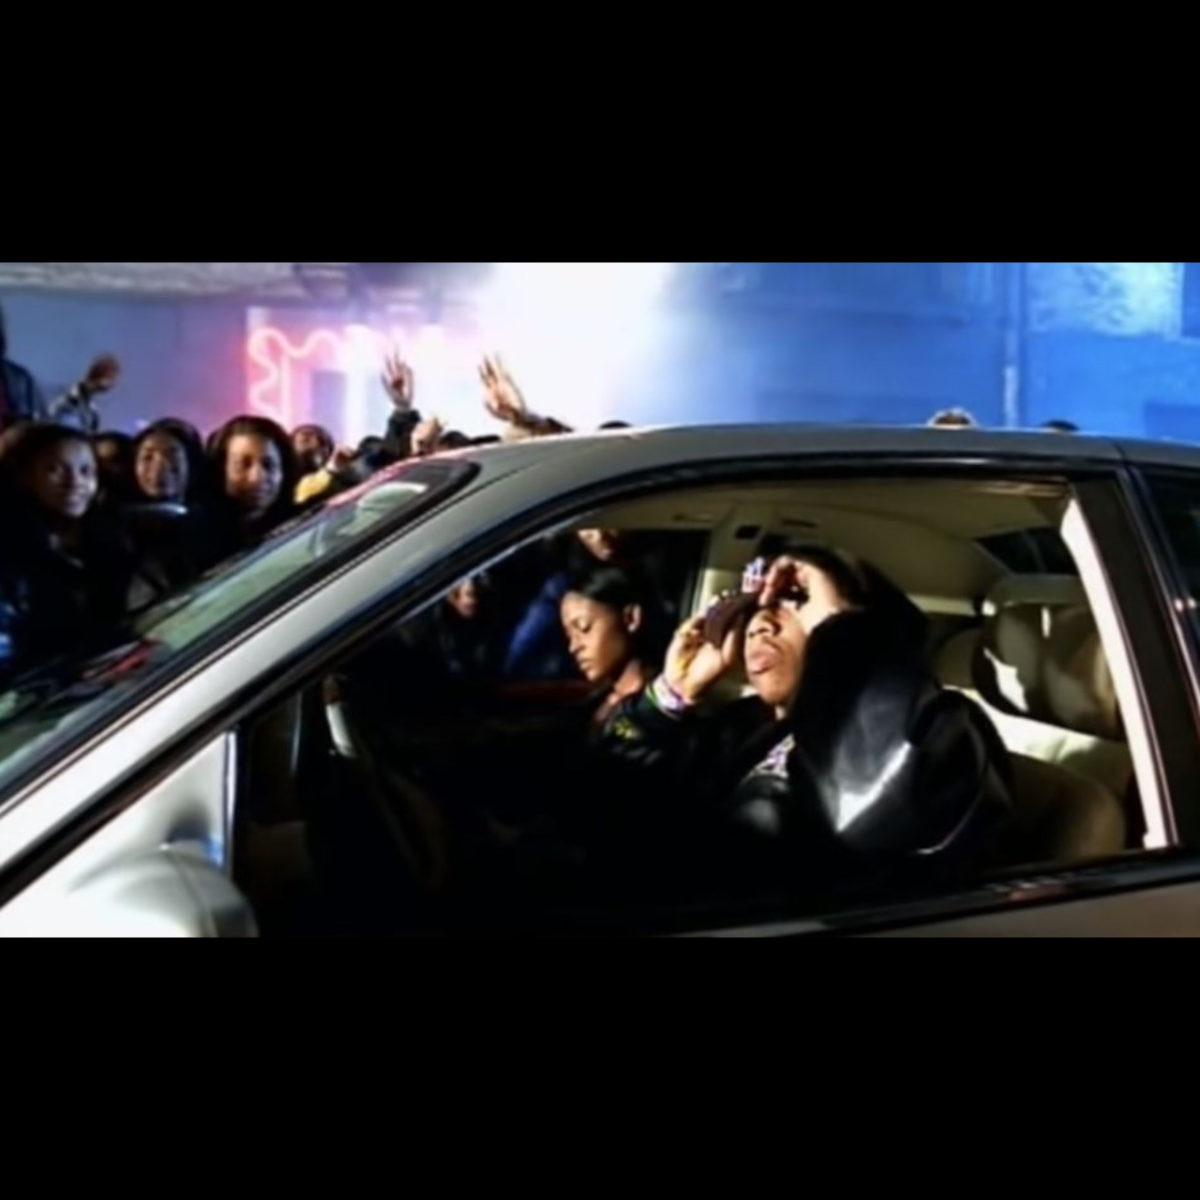 Jay-Z - Do It Again (Put Ya Hands Up) (ft. Beanie Sigel and Amil) (Thumbnail)